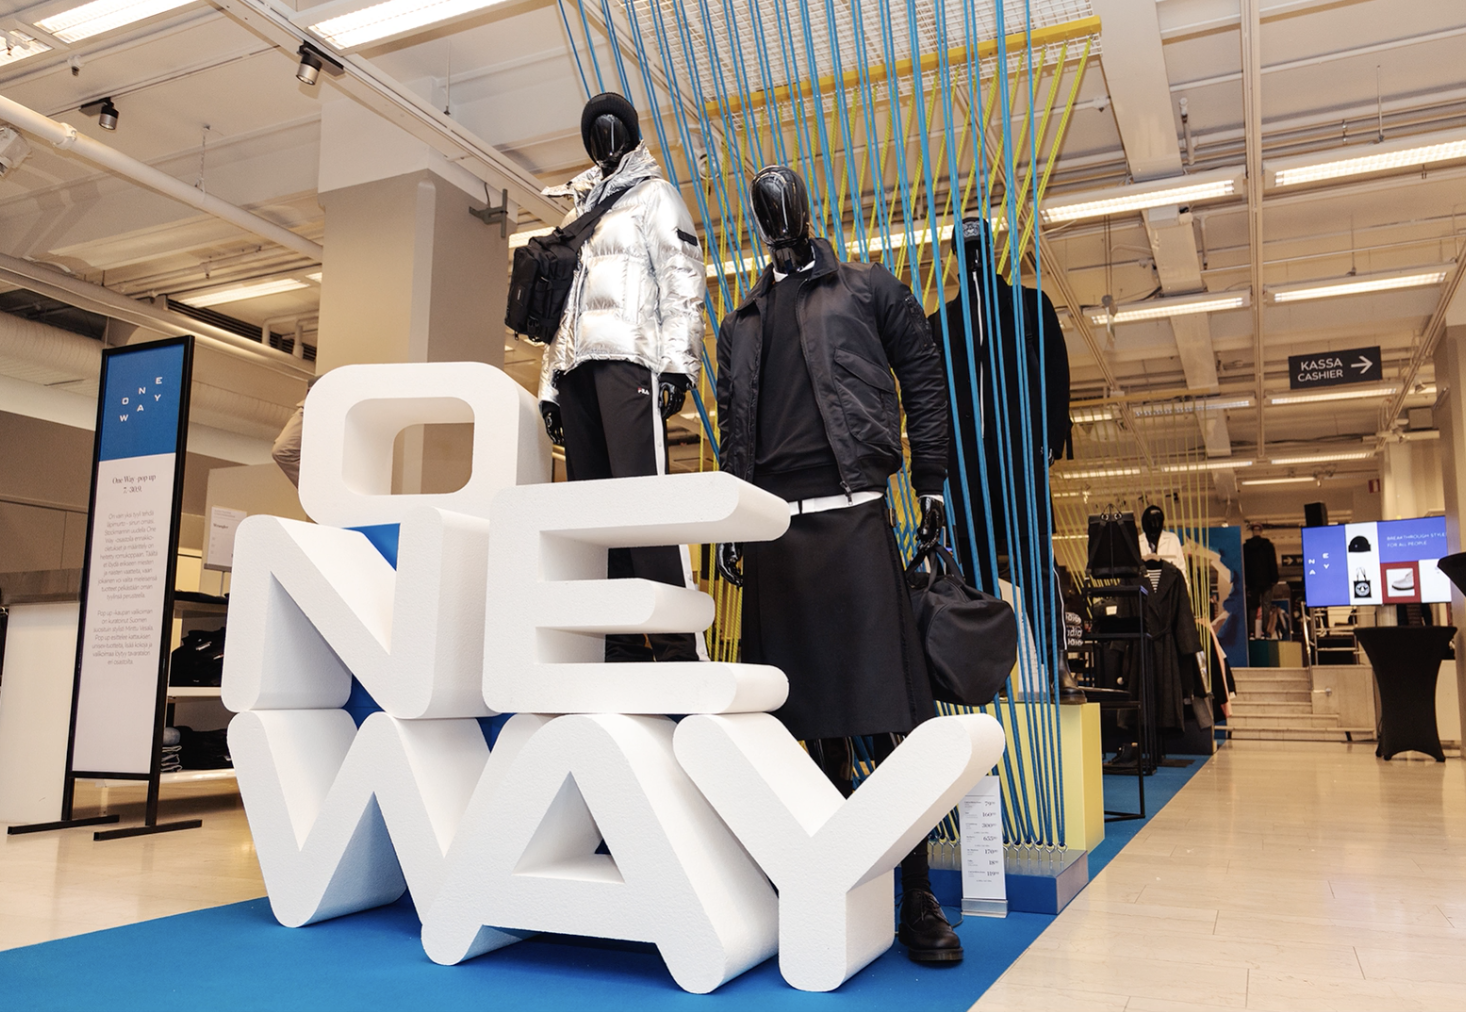 This Department Store Opened a Gender-Neutral Shopping Floor